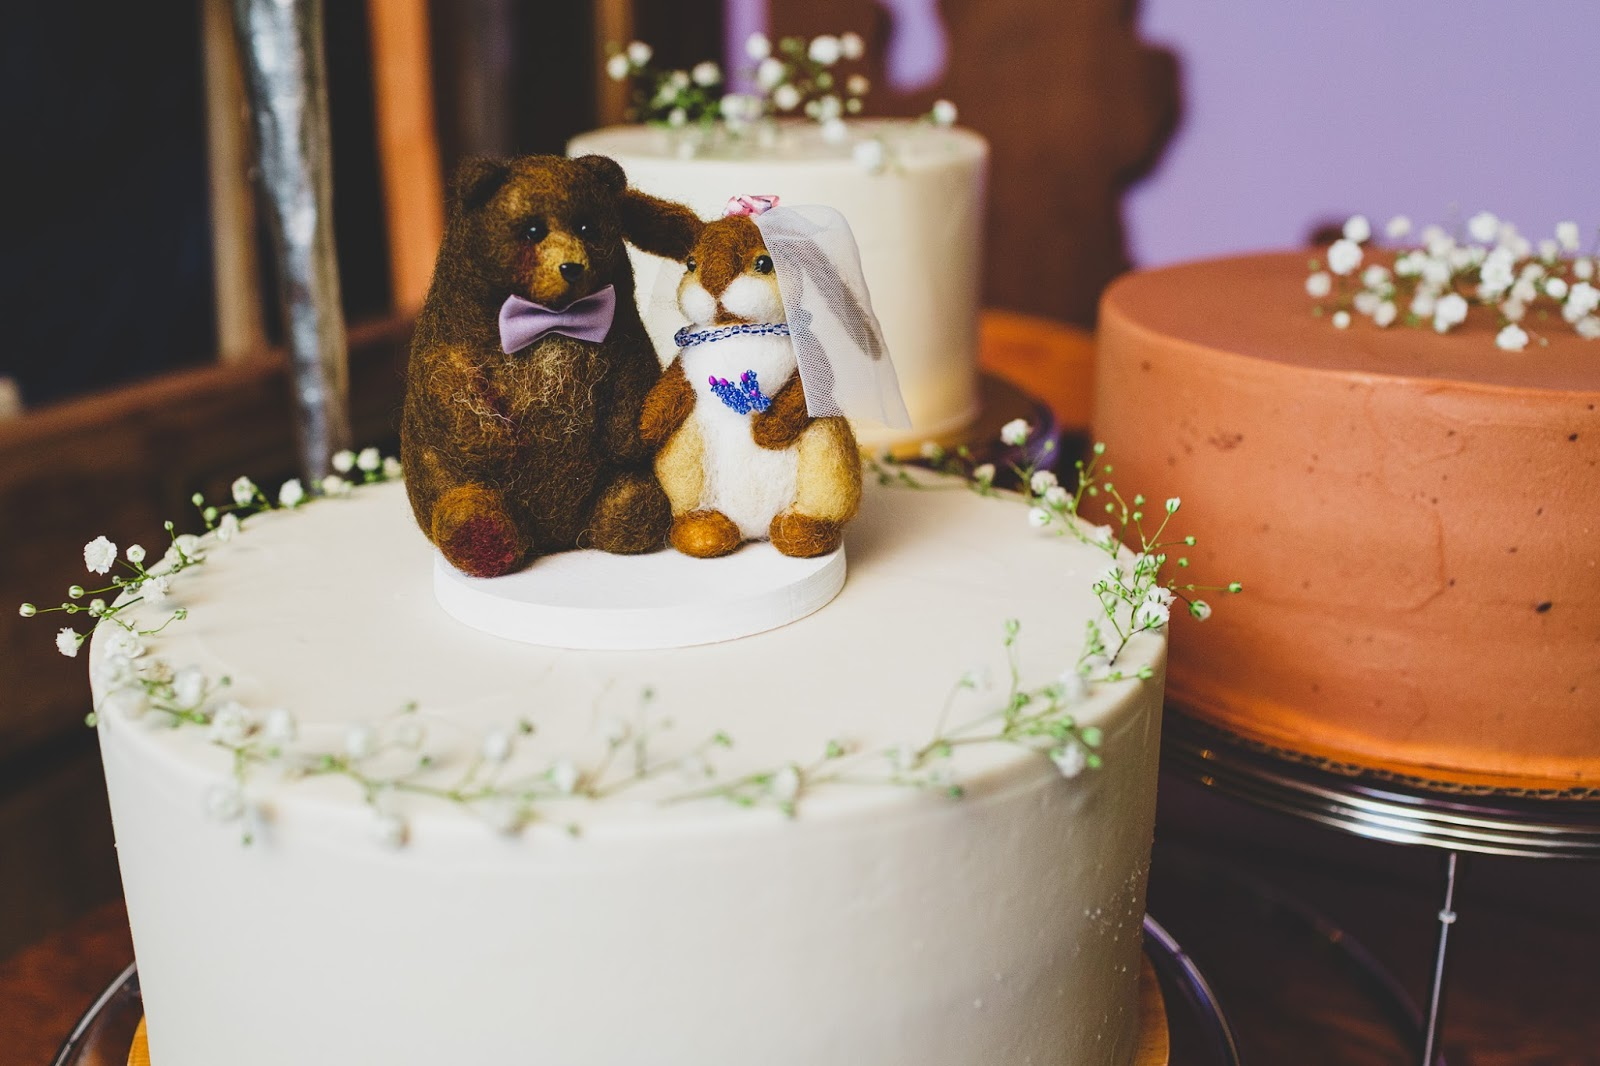 Sweet Maresa's vegan wedding cake | Catskills wedding photography - blog.cassiecastellaw.com